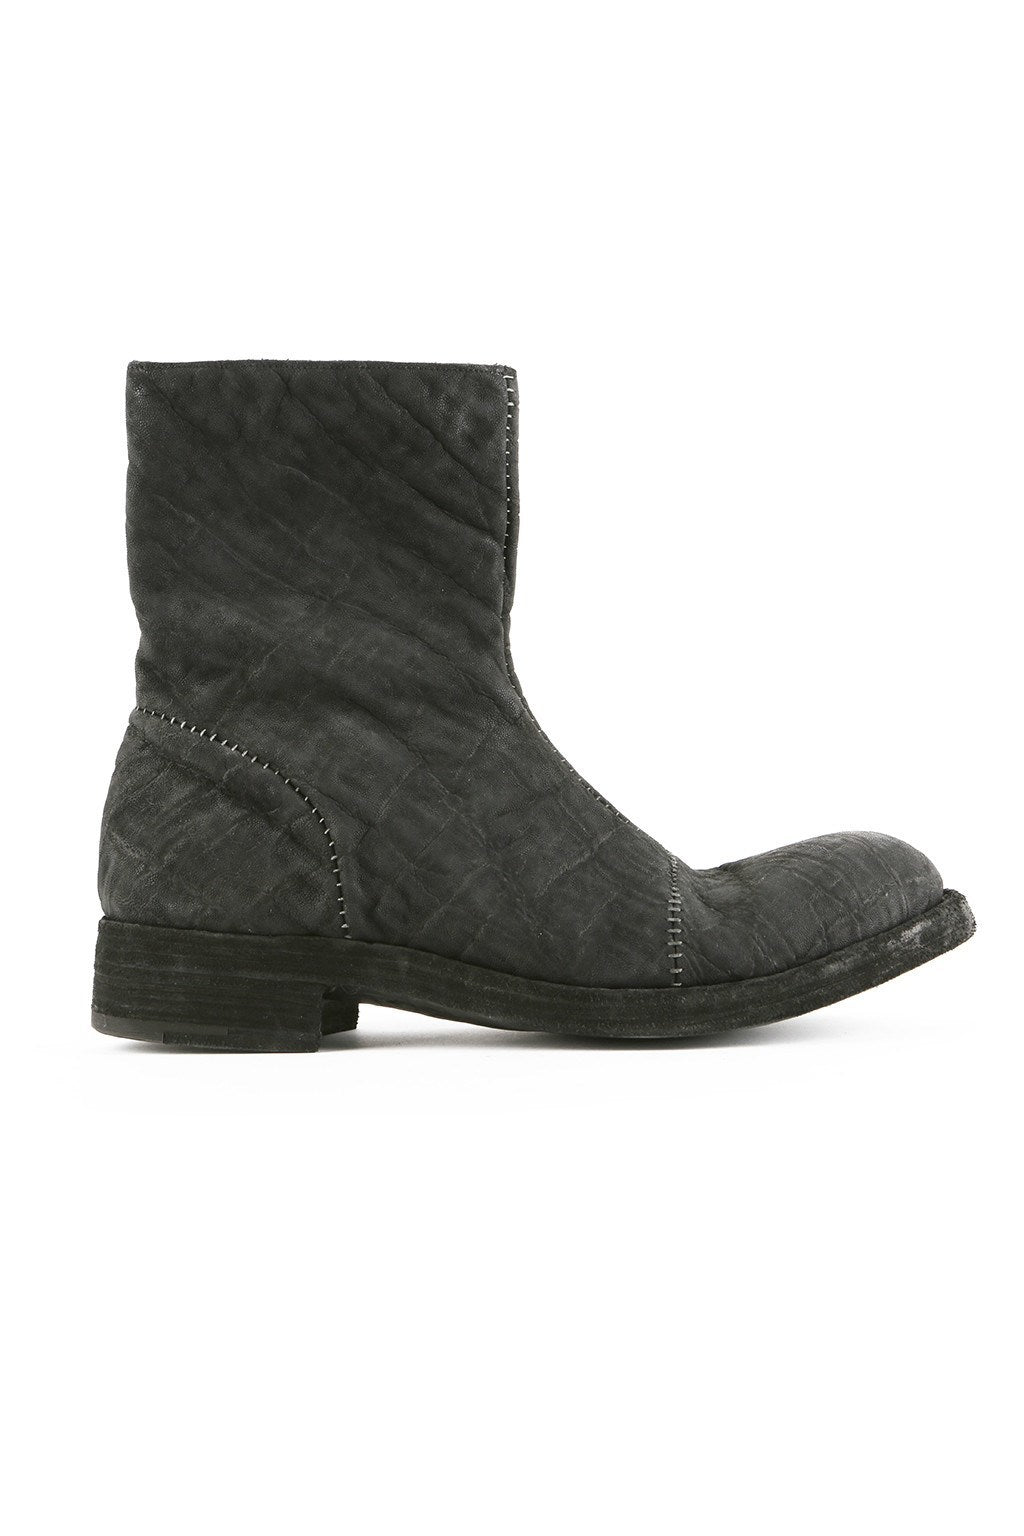 Boots - Black Croc Zip Boot